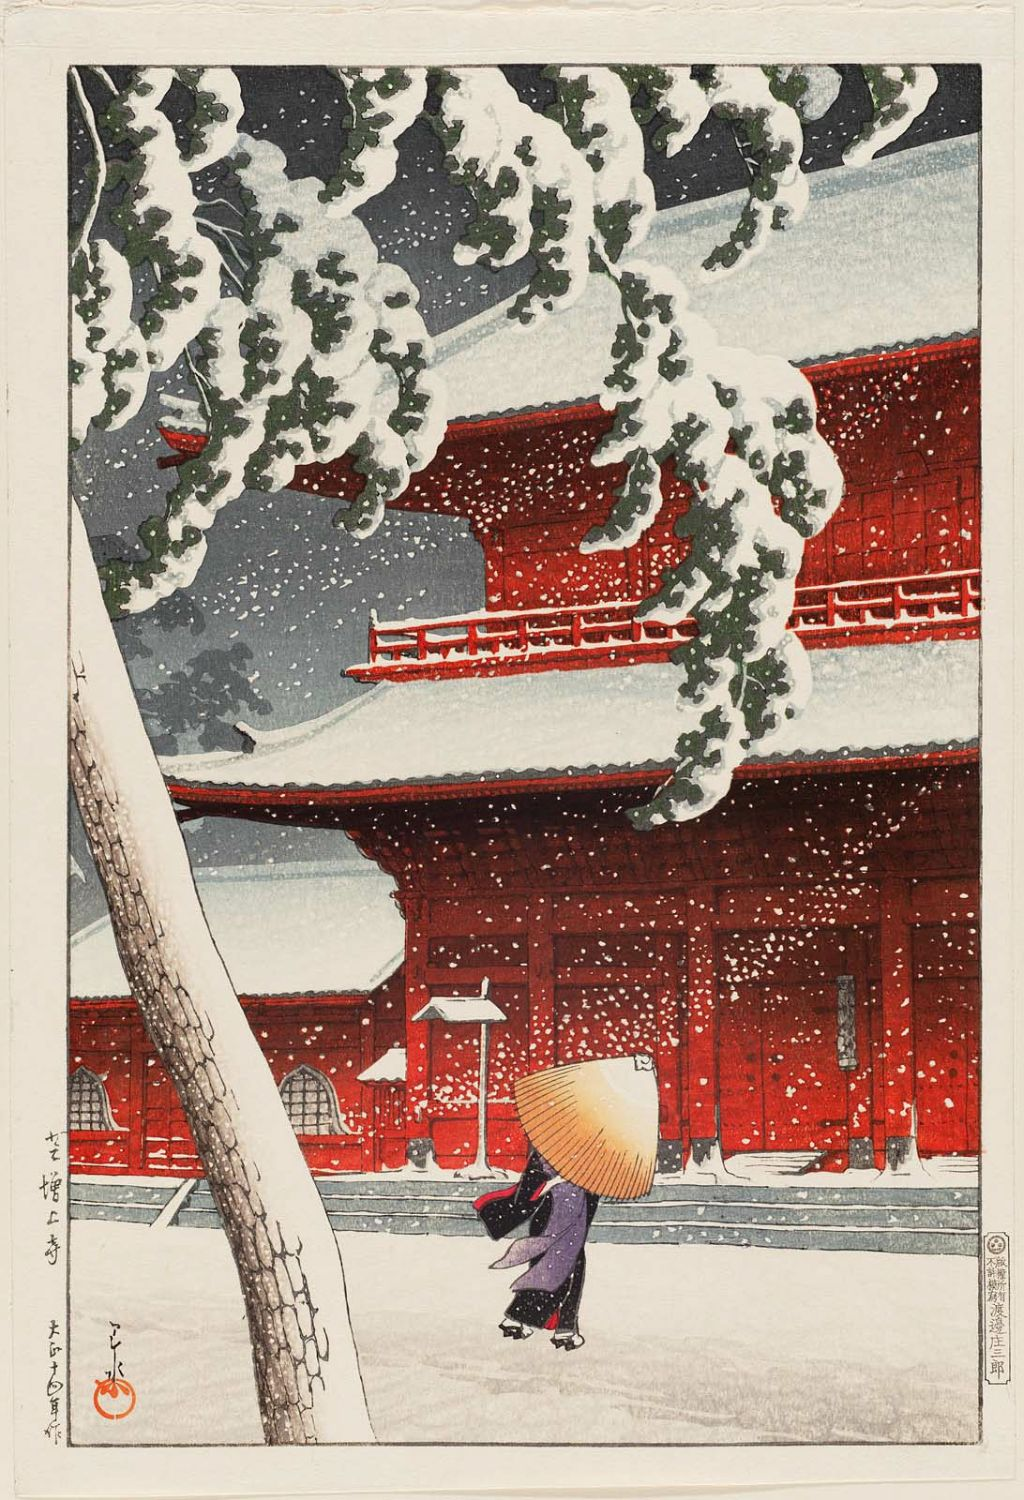 "Hasui - Shiba Zojoji Temple. Some of the factors, important for establishing a value, to be considered for an accurate appraisal and pricing are, condition, impression and the fact it is a third state (""third edition"") of the print and some other less important factors for appraising Japanese woodblock prints."